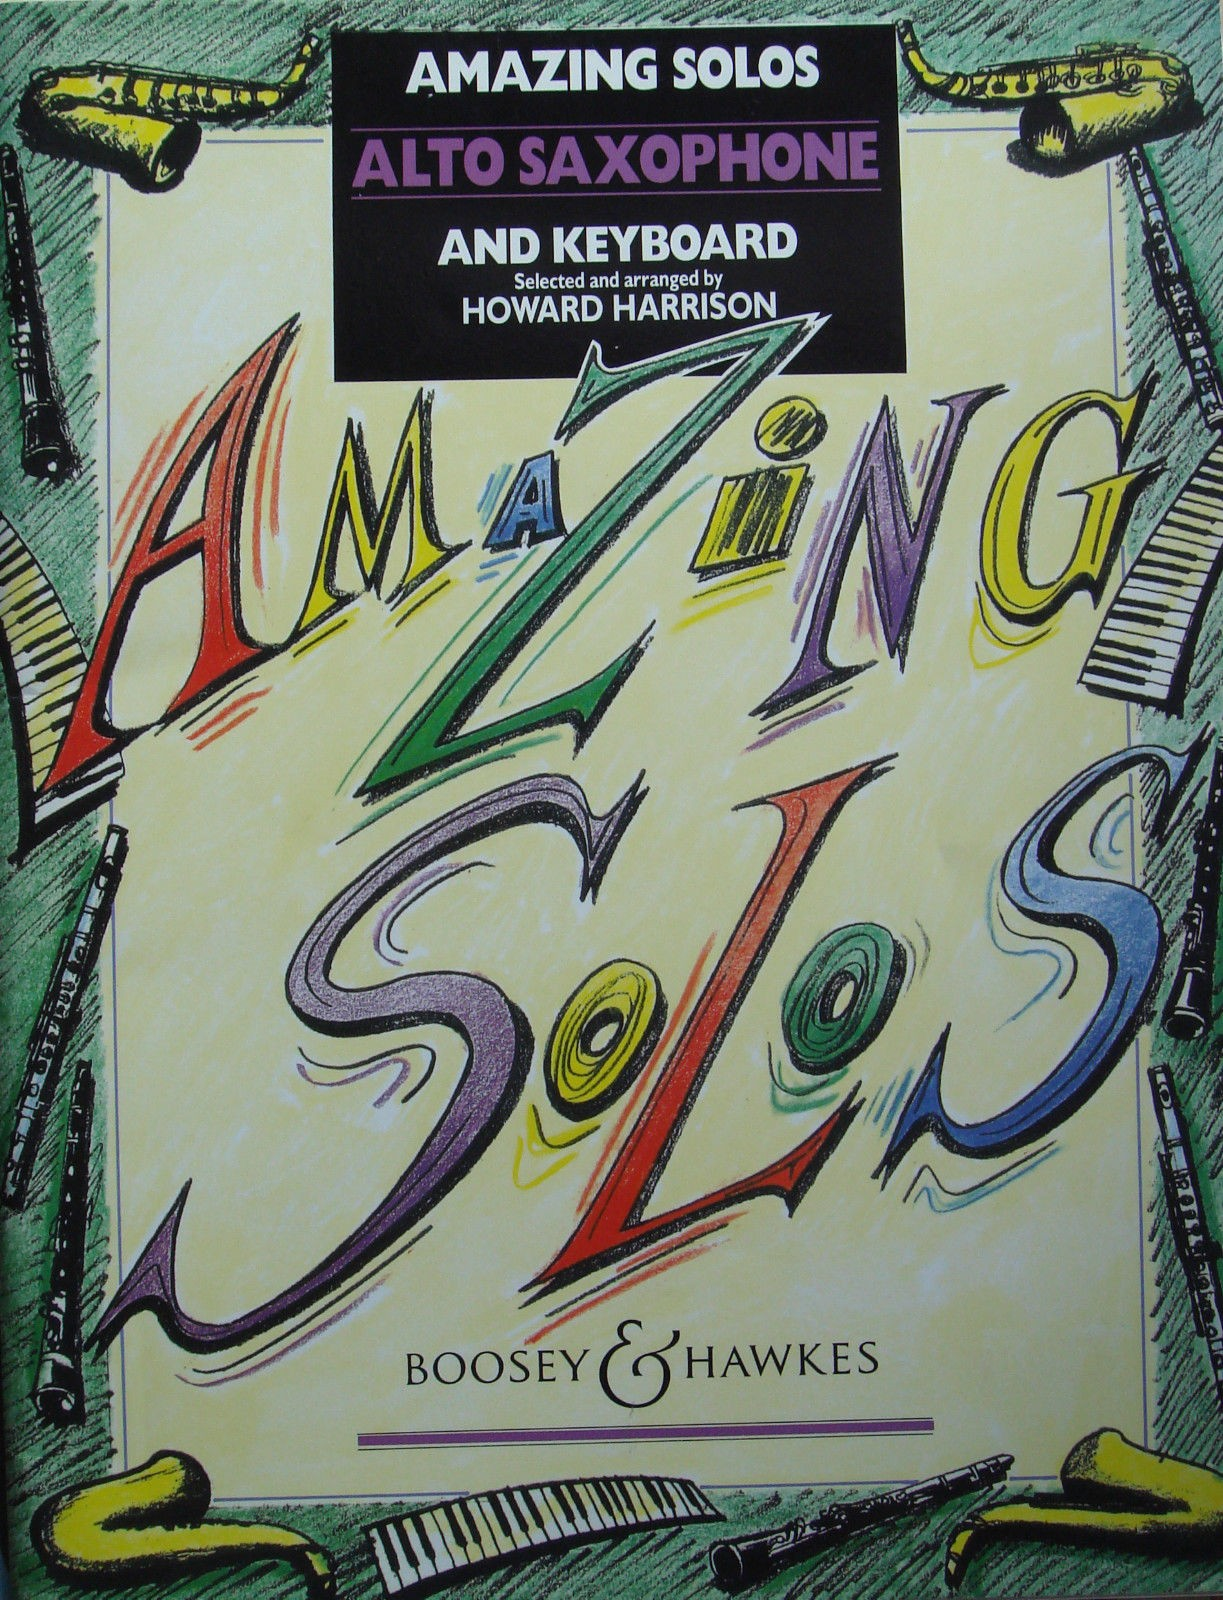 Amazing Solos Alto Saxophone & Keyboard Book Arr Howard Harrison B44